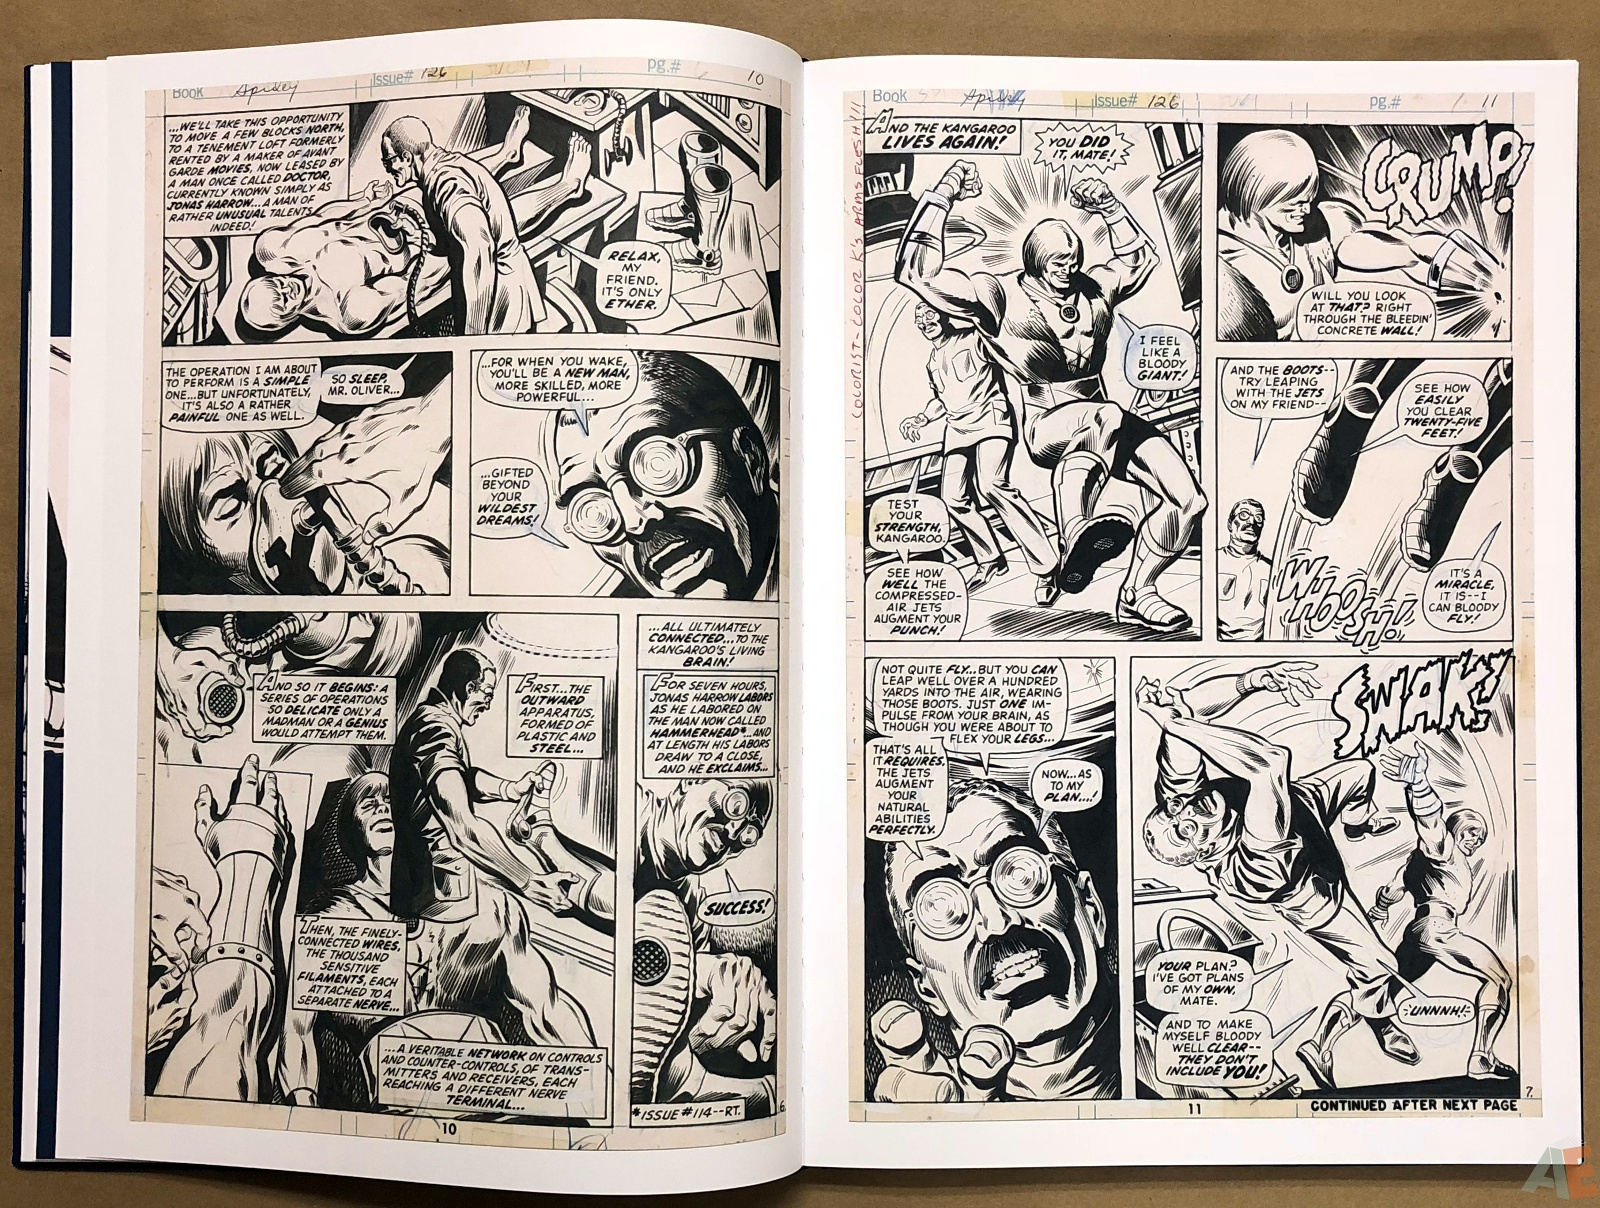 Ross Andru's The Amazing Spider-Man Artist's Edition 18